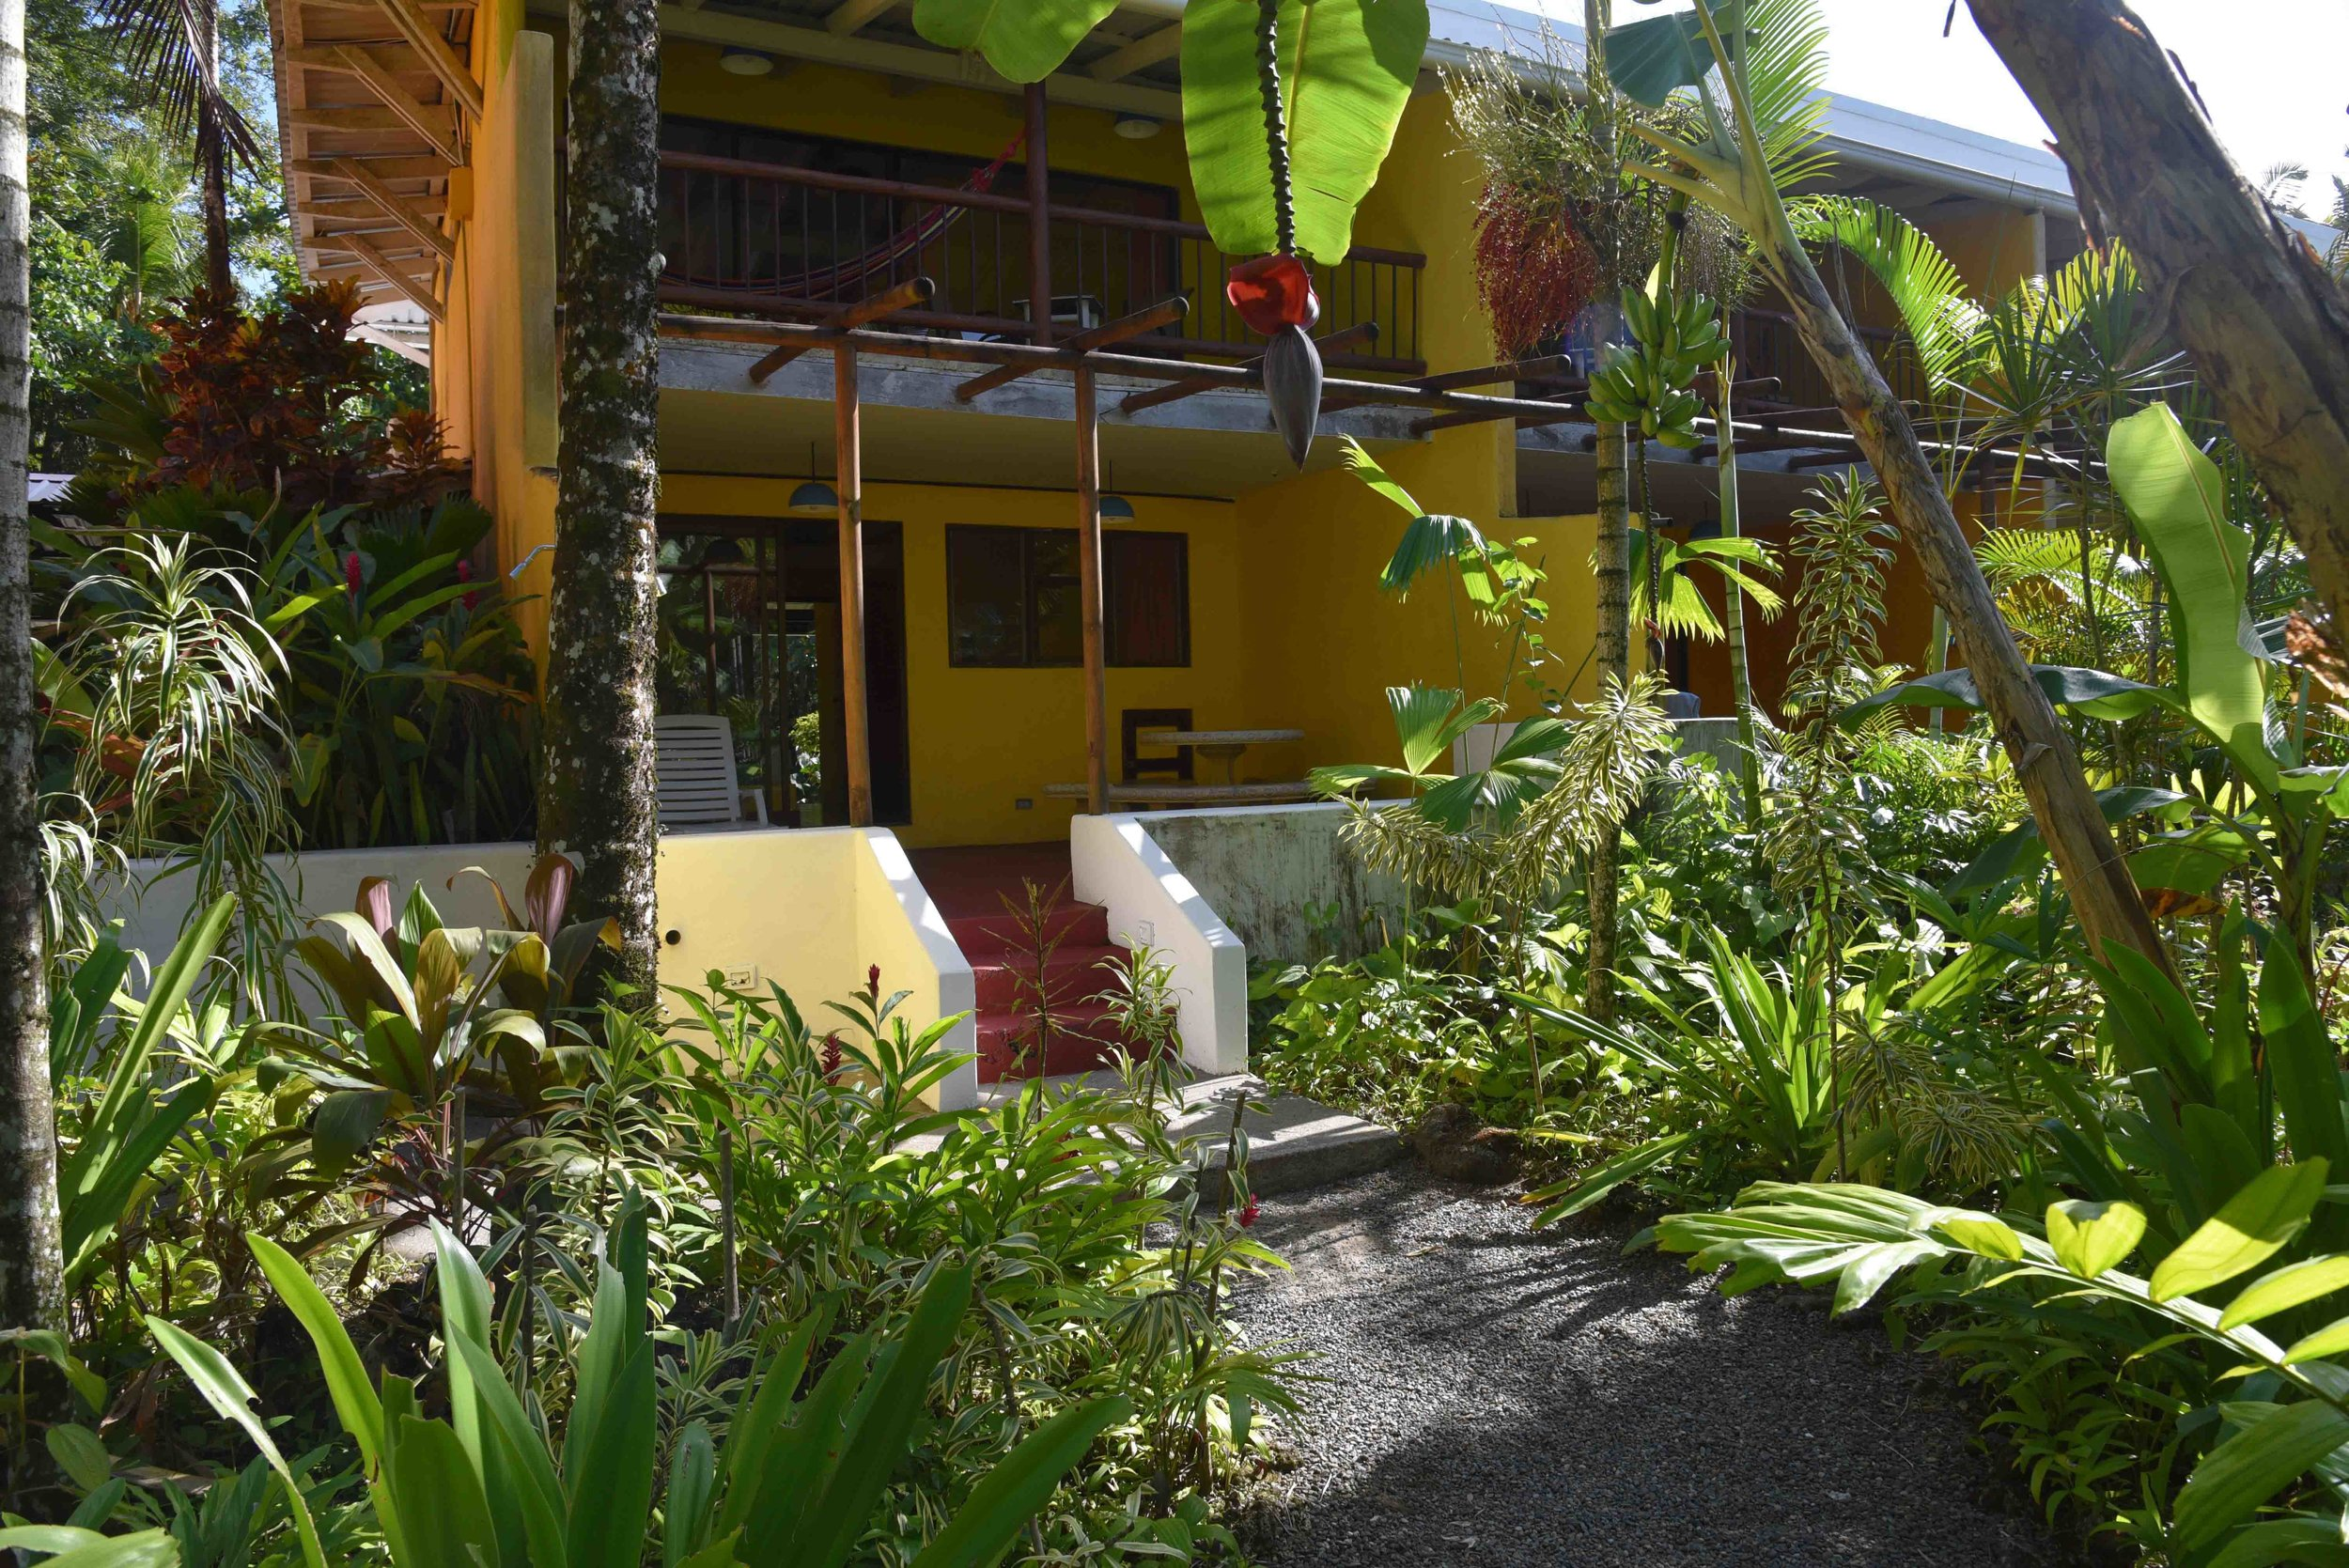 VILLAS DEL CARIBE COCLES PUERTO VIEJO  BREATHWORK YOGA RETREAT  MEG WILLIAMS  LISA D. (C)-6.jpg